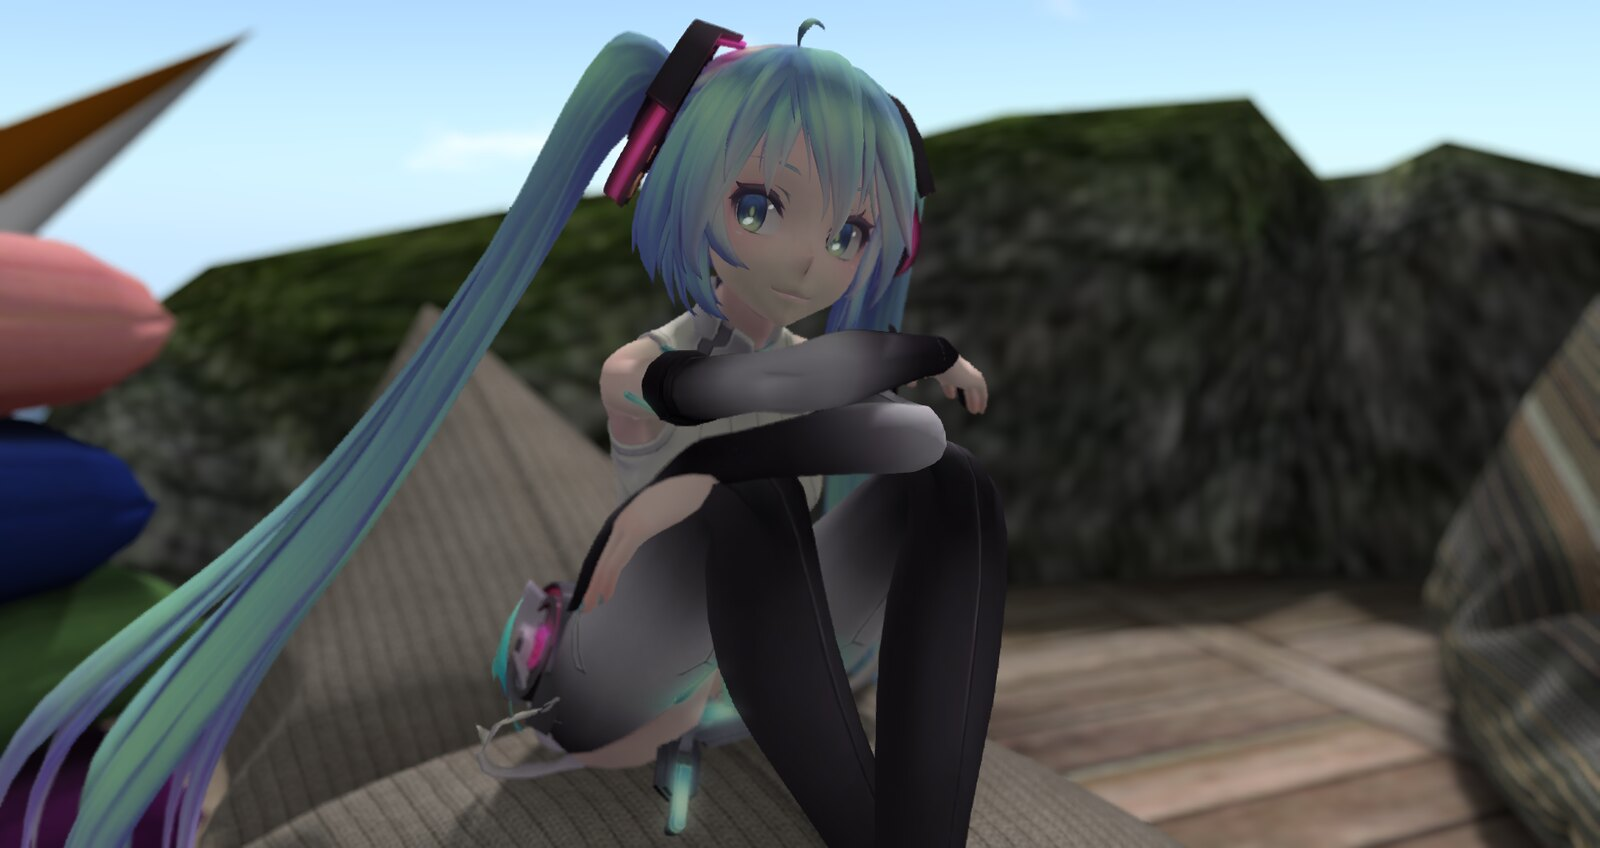 MMD Tda Miku in Secondlife